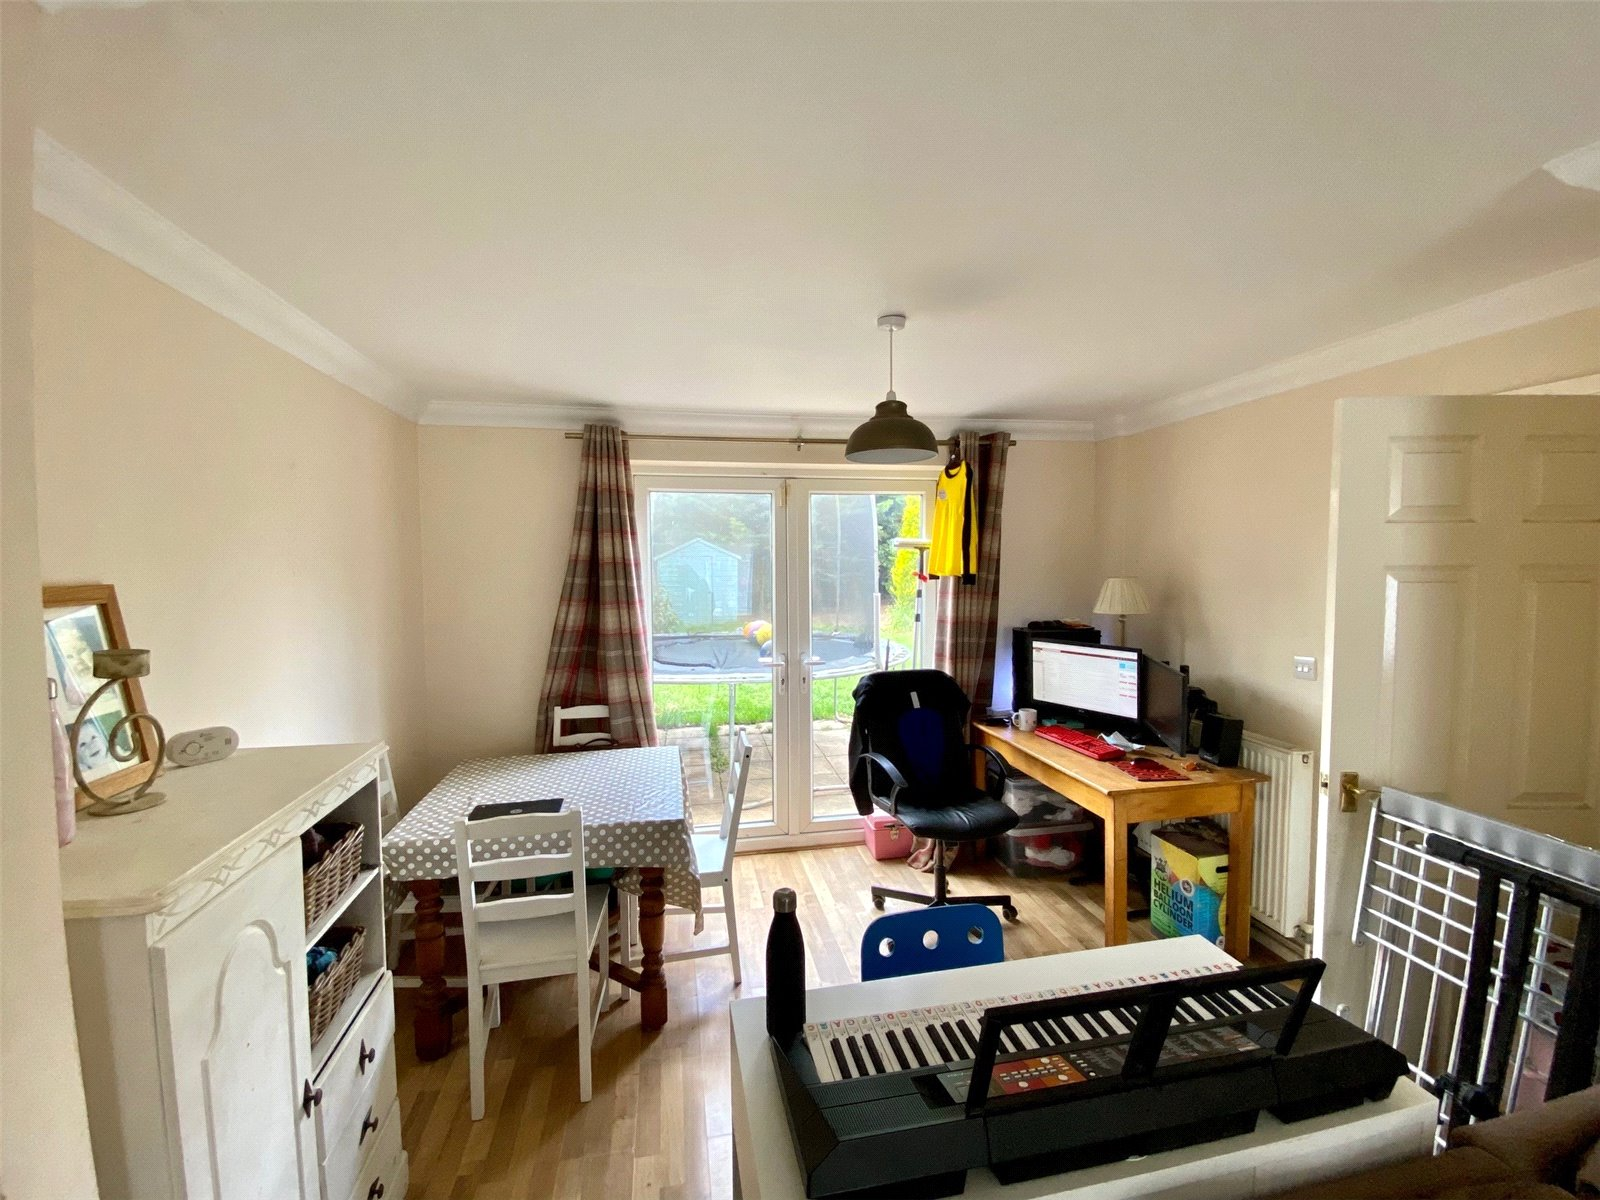 3 bed house to rent in Bricket Wood, AL2 3NB  - Property Image 8